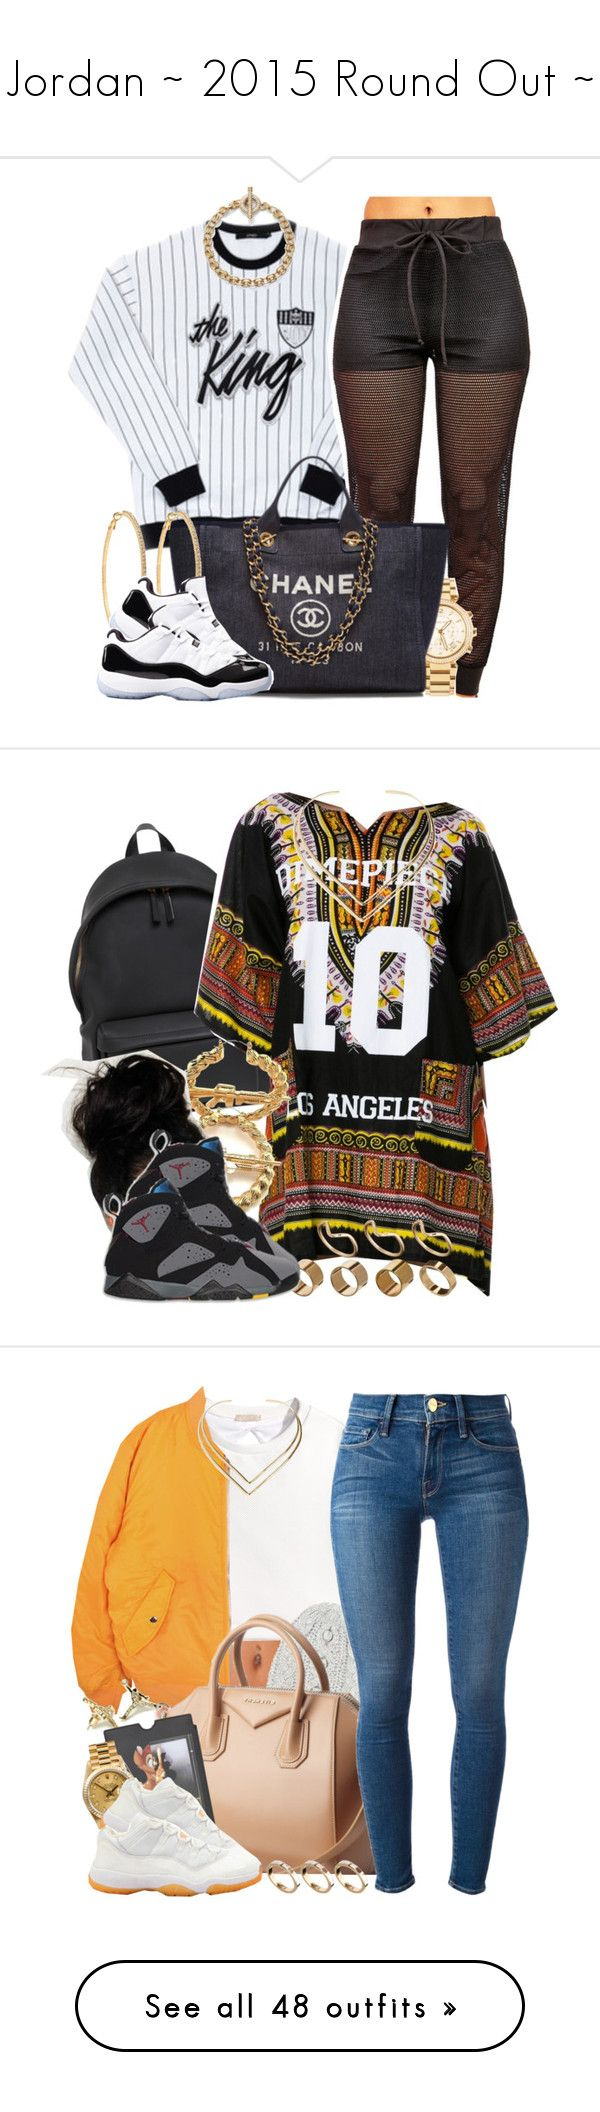 """""""Jordan ~ 2015 Round Out ~"""" by oh-aurora ❤ liked on Polyvore featuring Michael Kors, Chanel, Roberta Chiarella, Concord, Ann Taylor, Givenchy, Dimepiece, Natalie B, RIFLE and Warehouse"""